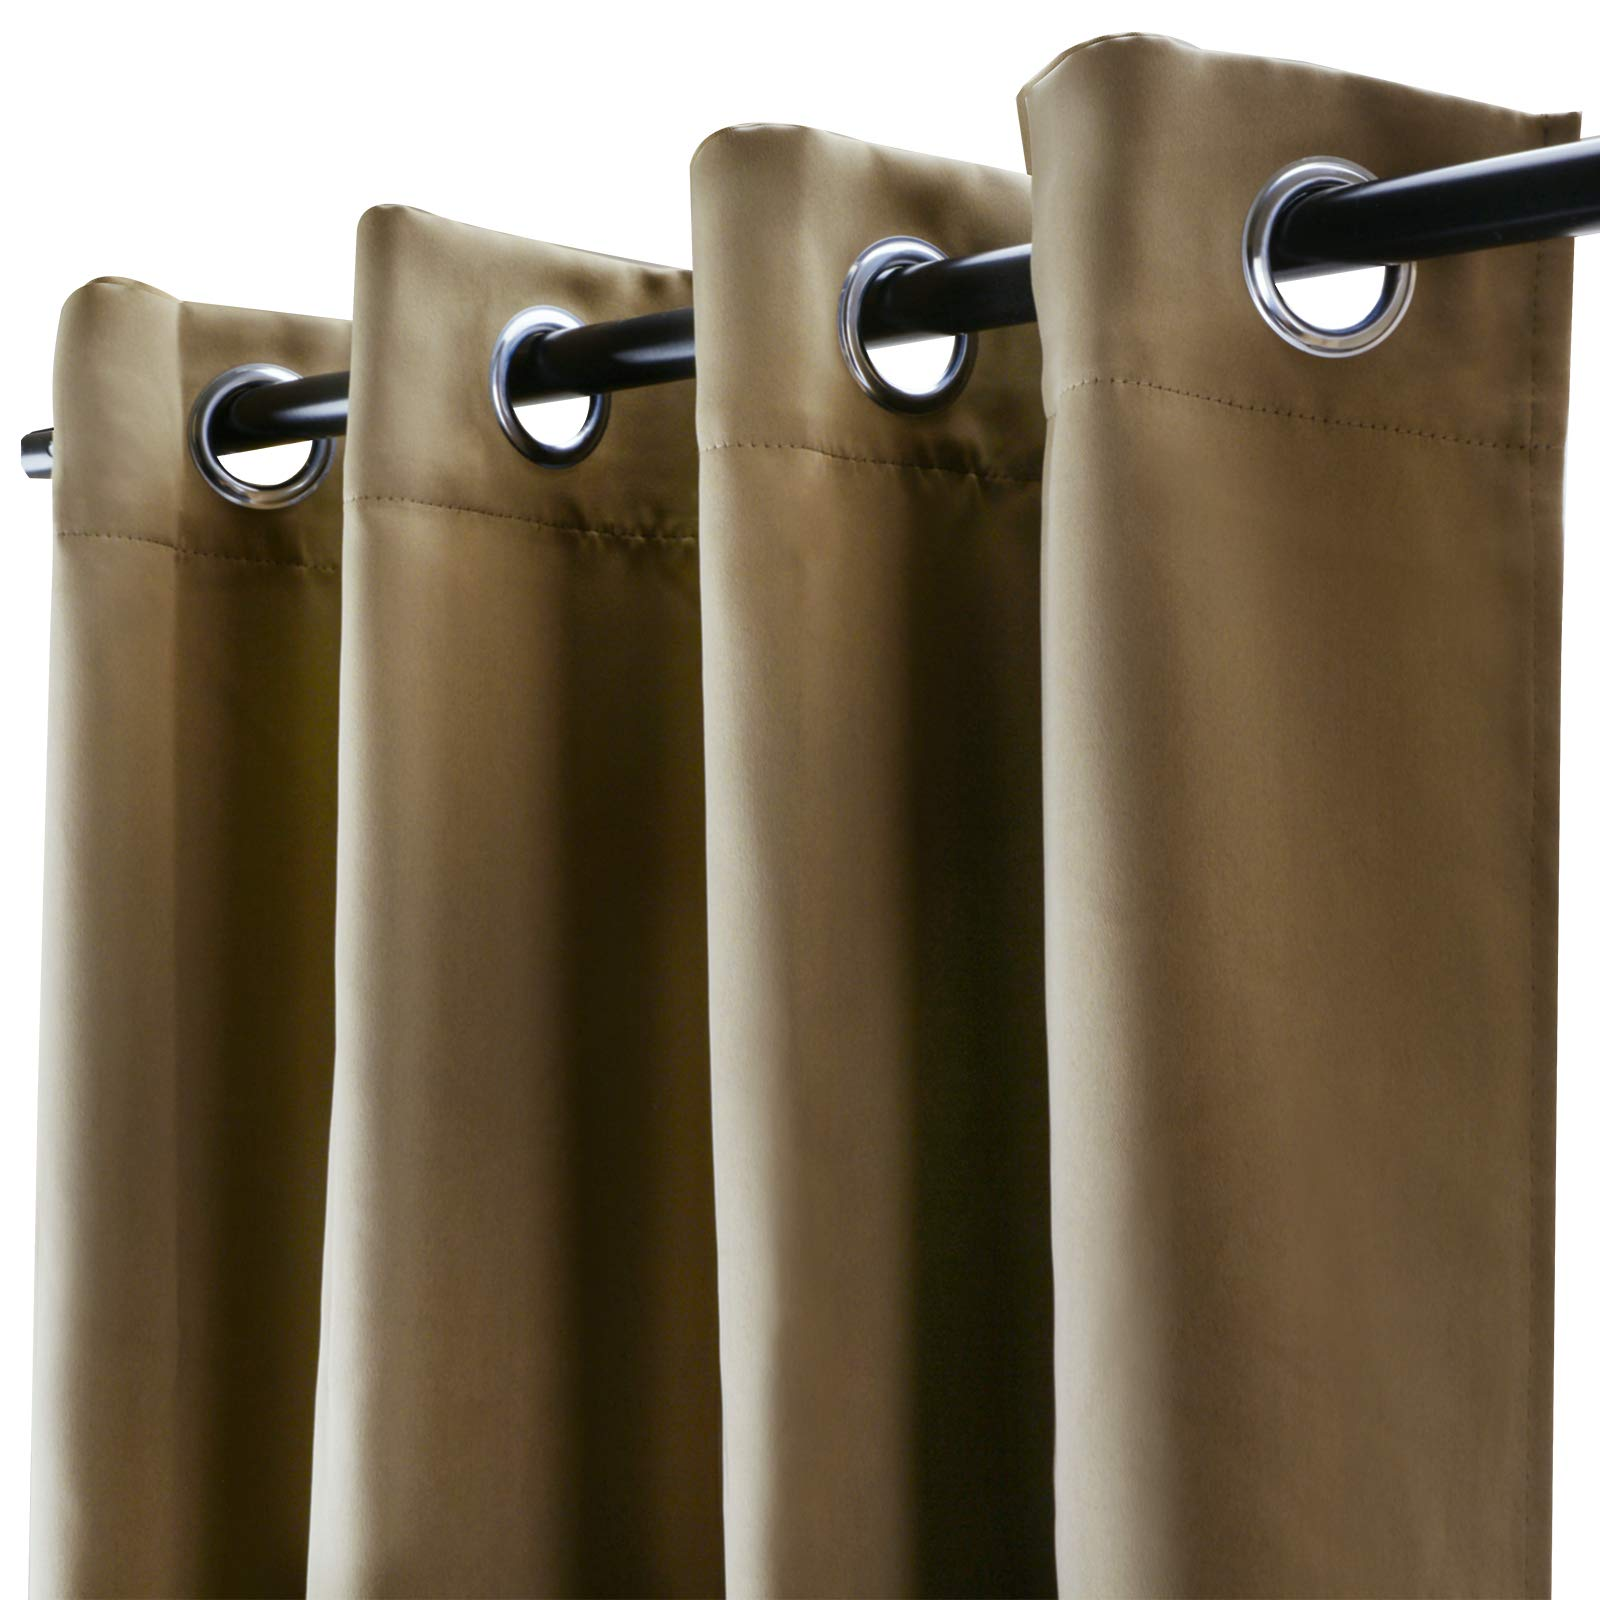 Voilarmart Blackout Curtains 52 x 95 Thermal Insulated Light Reducing Grommet Top Window Curtain Set for Bedroom, Living Room,2 Panels - Khaki